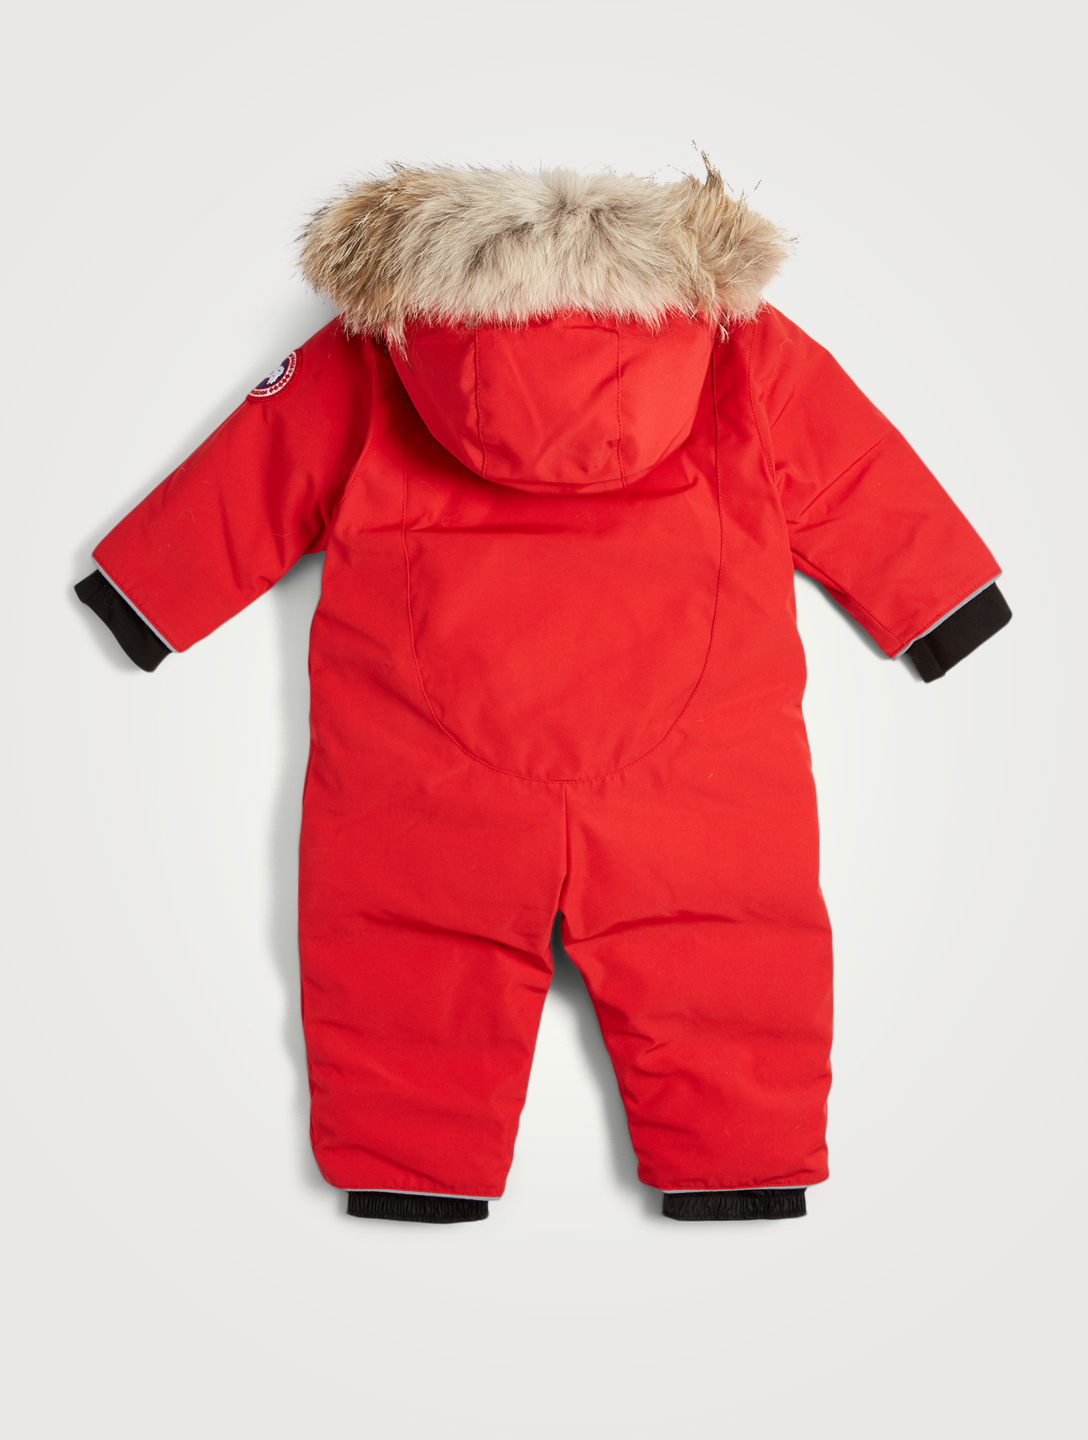 CANADA GOOSE Baby Lamb Down Snowsuit With Fur Hood Kids Red